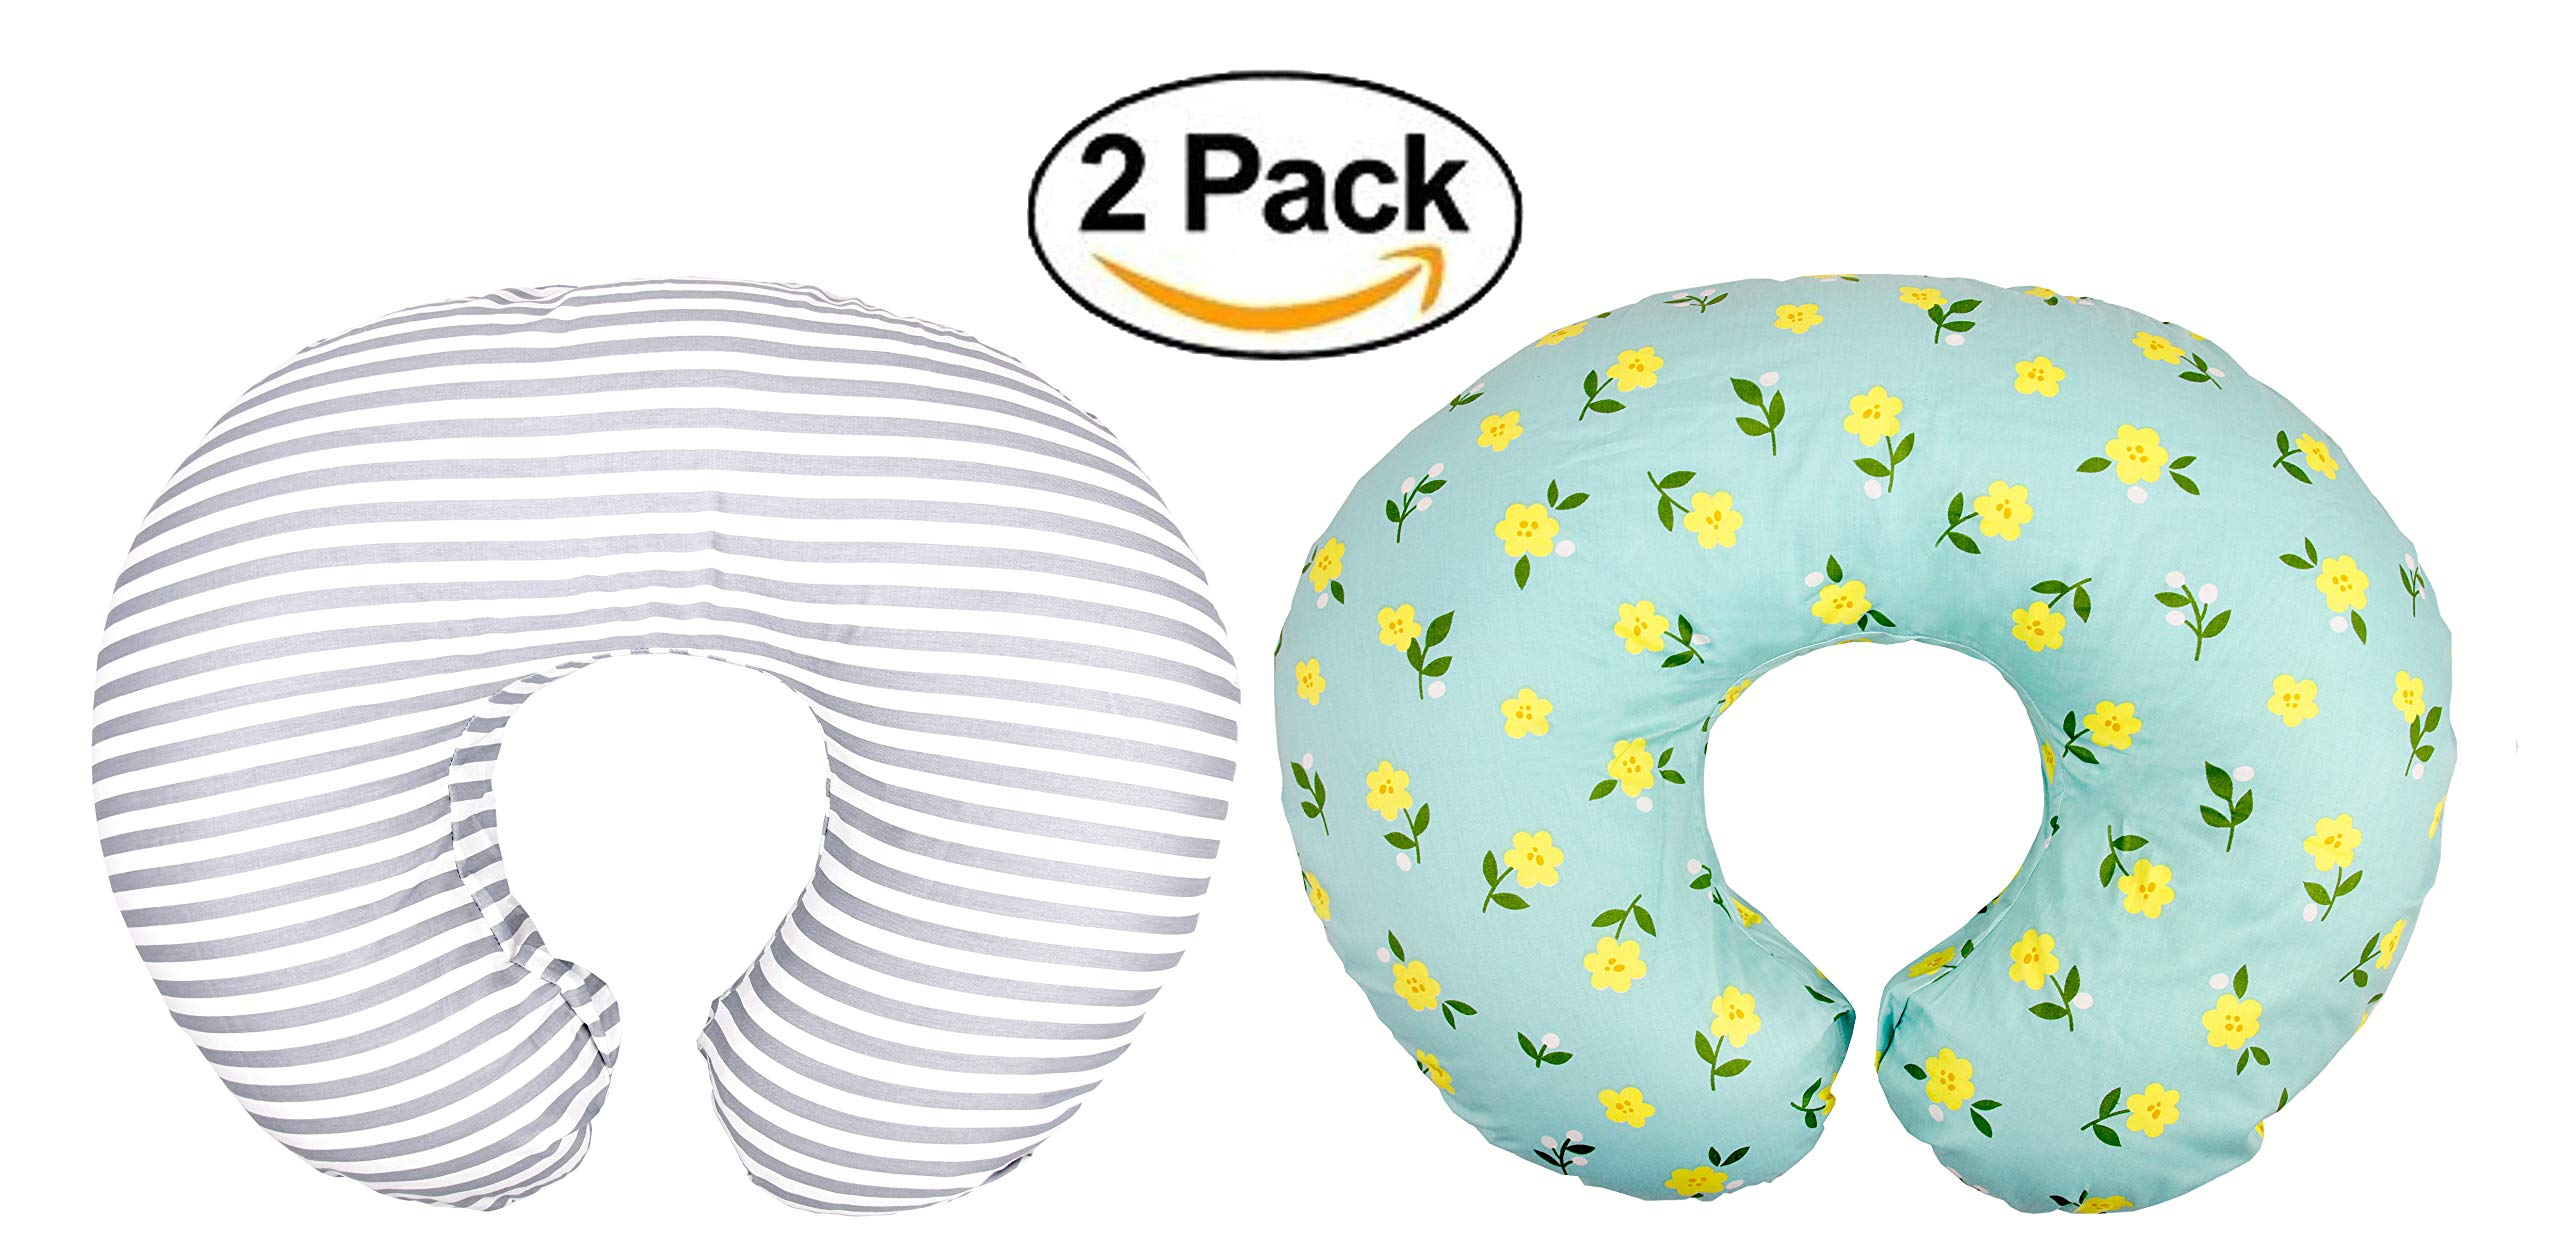 Premium Quality 2 Pack Nursing Pillow Covers by Mila Millie | Baby Girl Chic Flower Design | Gray Stripes Unisex Slipcover | 100% Cotton Hypoallergenic | Breastfeeding | Shower Gift | Fits Boppy